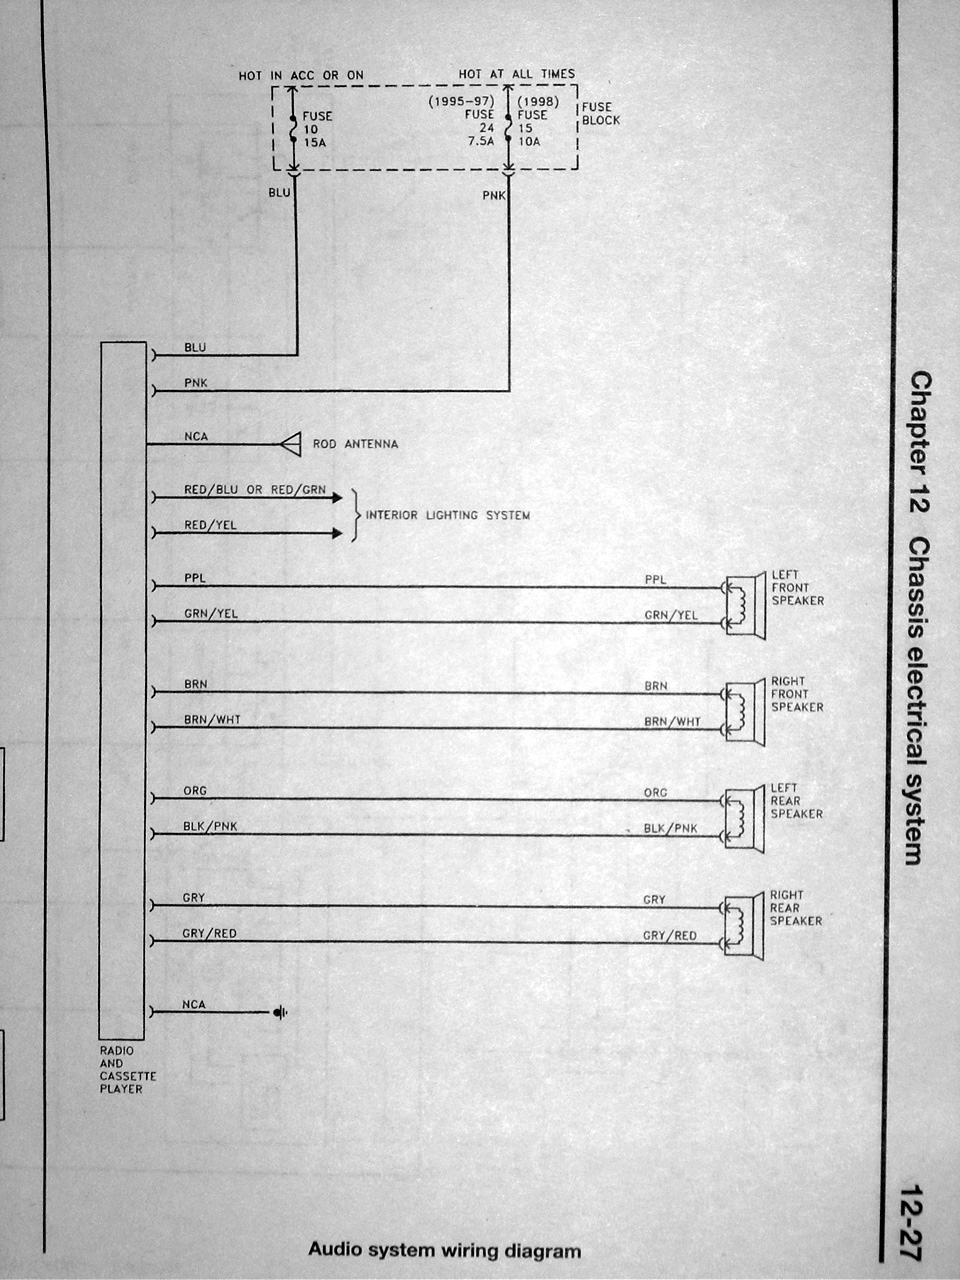 WRG-6786] 2013 Altima Remote Start Wiring Diagram on